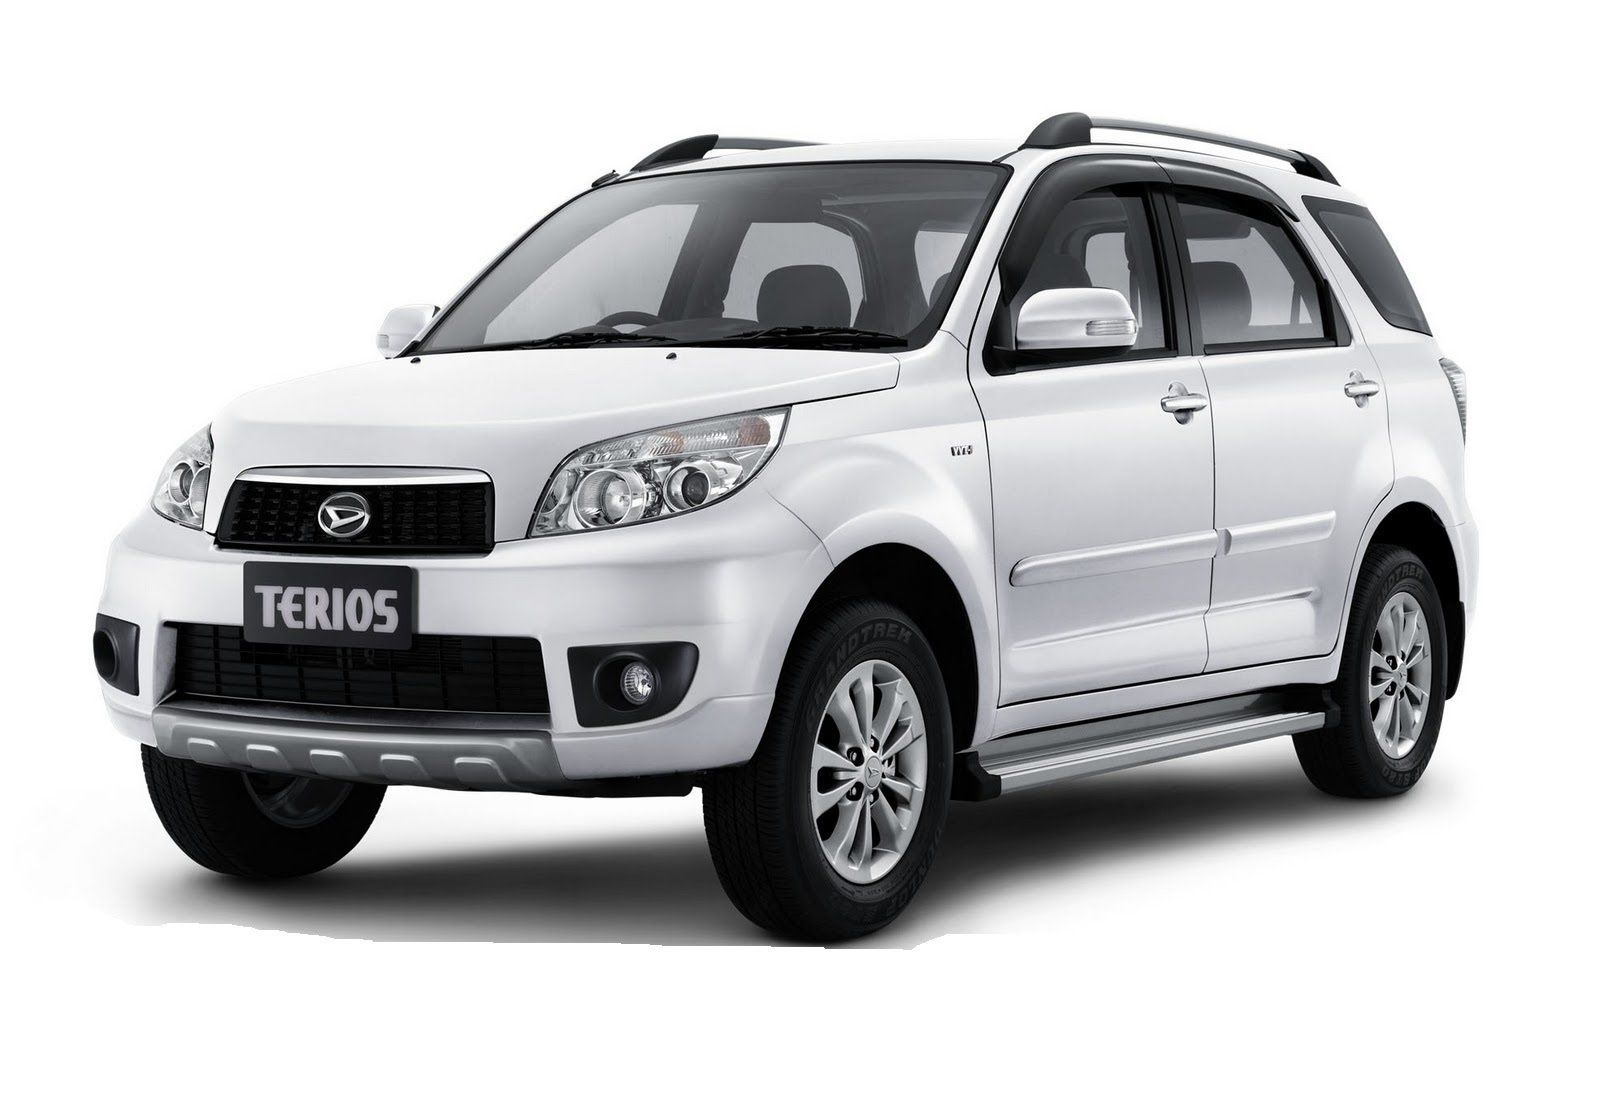 small resolution of the daihatsu terios is a mini suv first released in 1997 by the japanese car manufacturer daihatsu